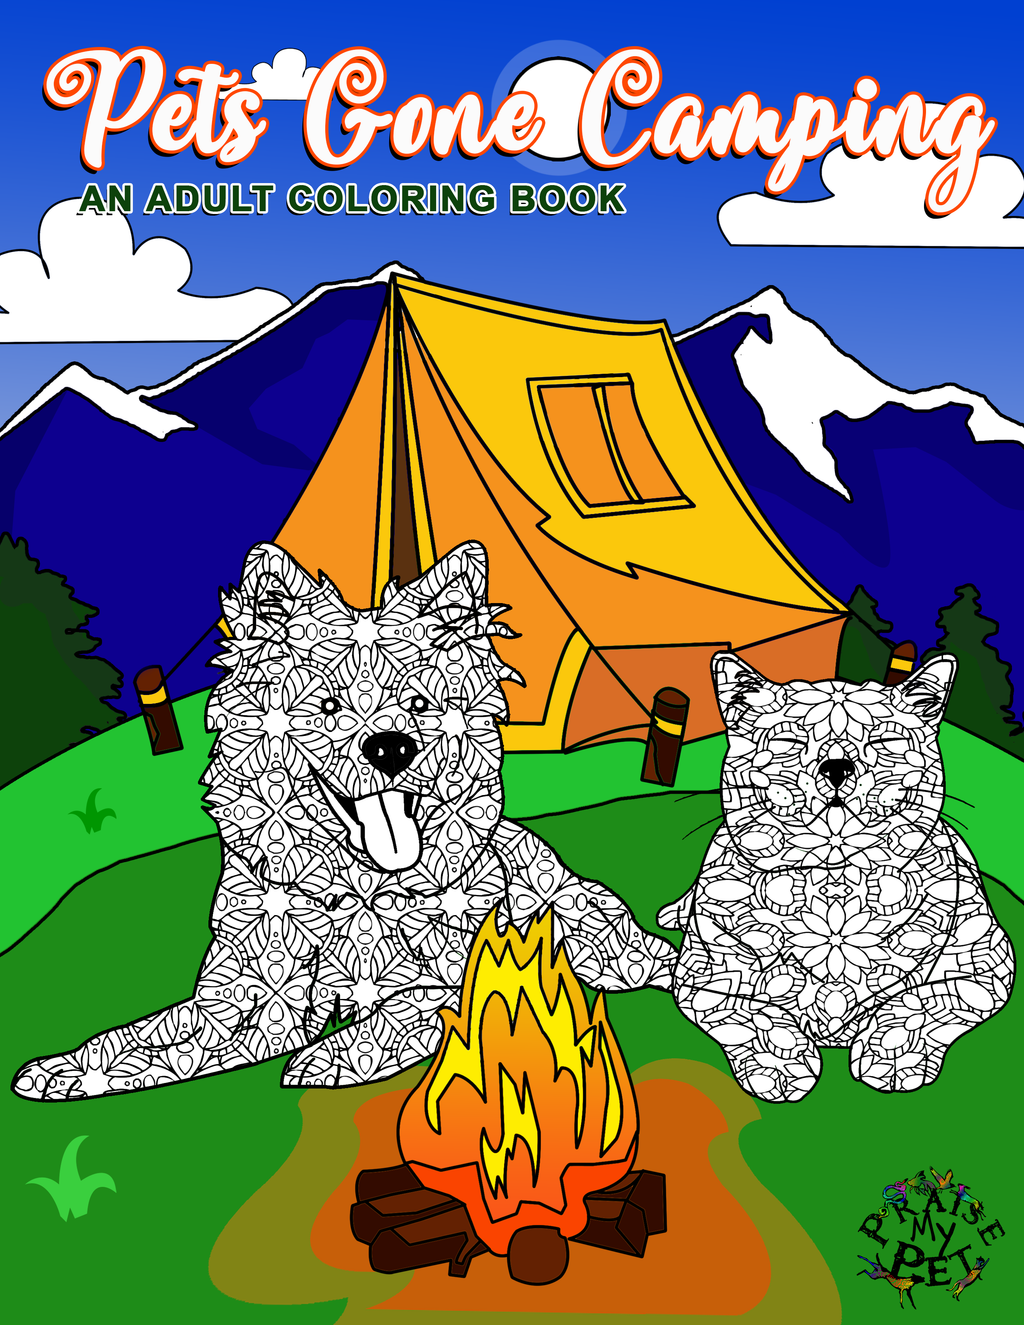 Pets Gone Camping: A Mandala Coloring Book for Adults